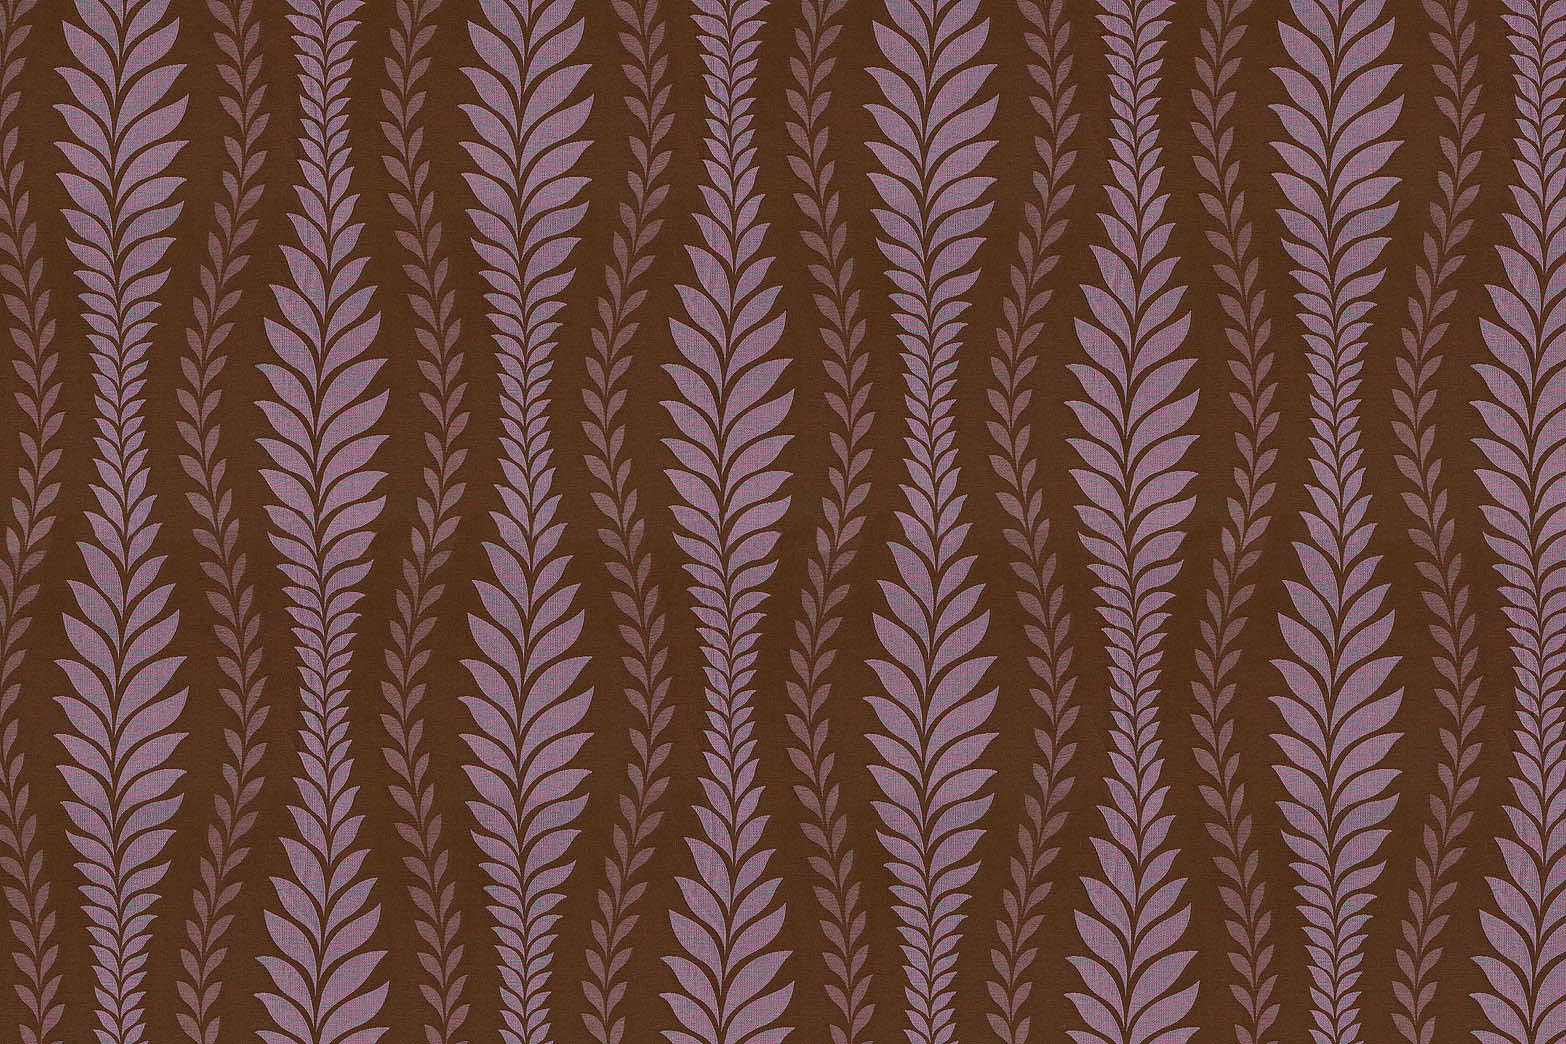 Home Decor 8\u0022x8\u0022 Fabric Swatch-IMAN Zahra Leaf Radicchio